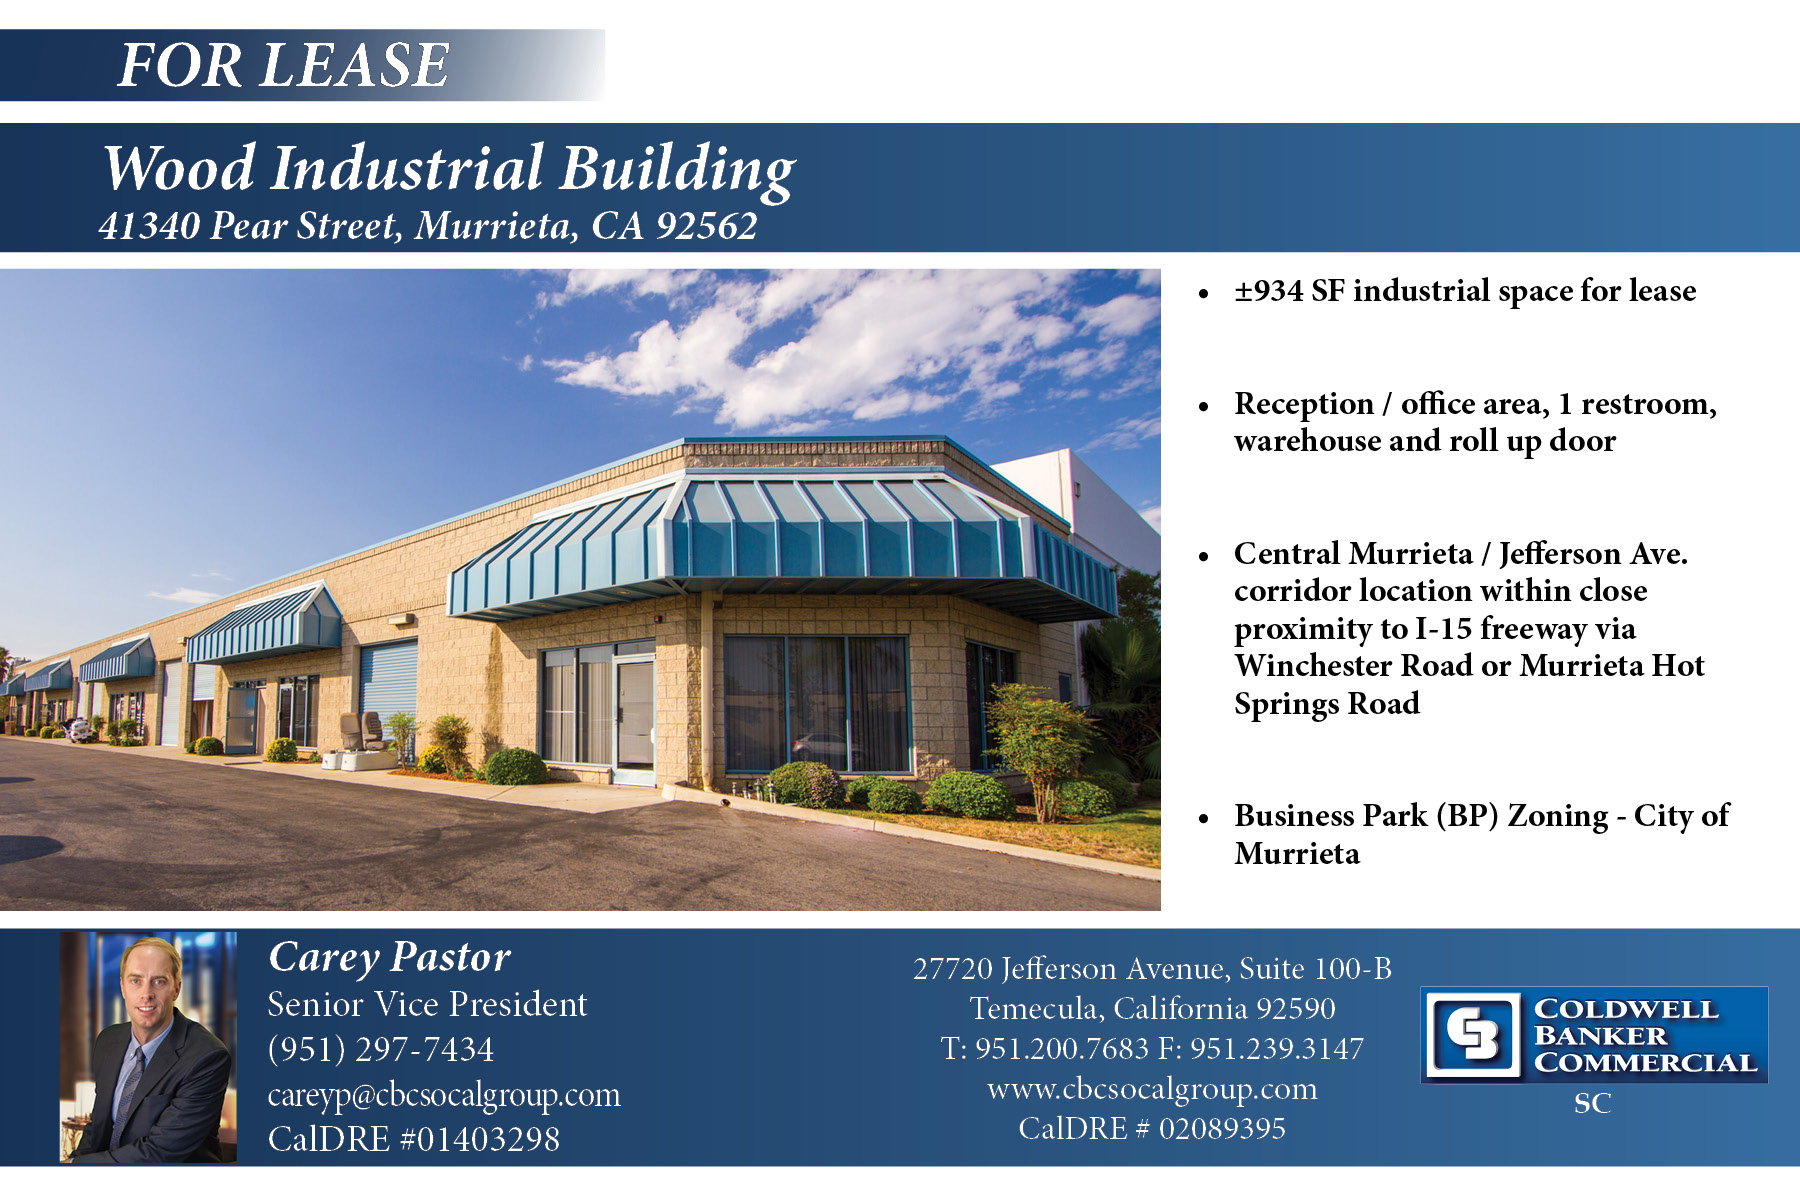 FOR LEASE! ±934 SF Industrial Space in Murrieta